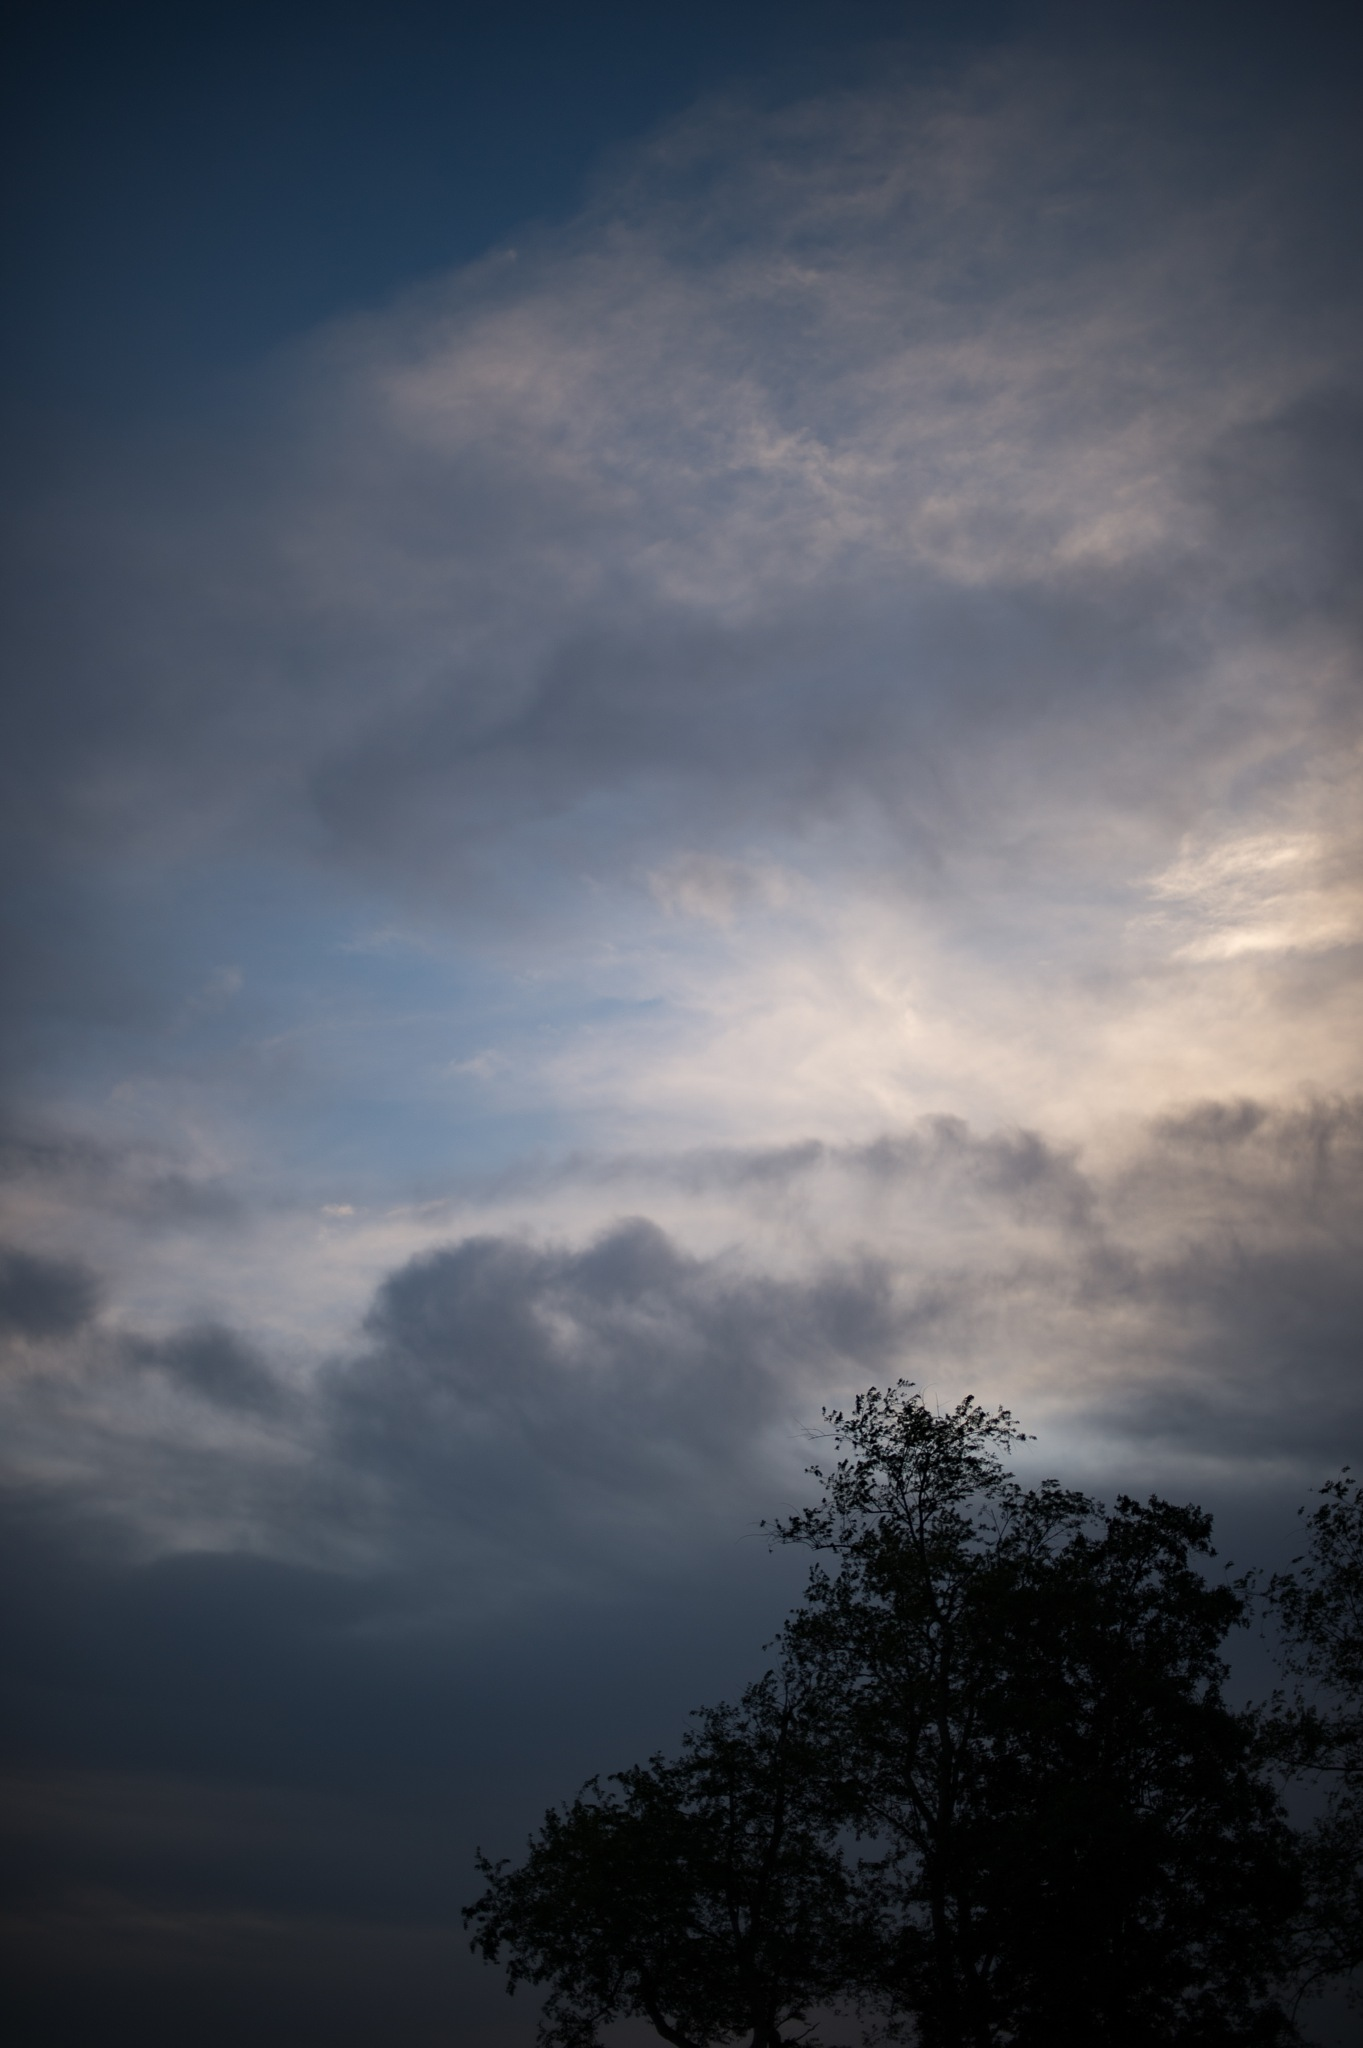 evening sky and trees by mbmiller2